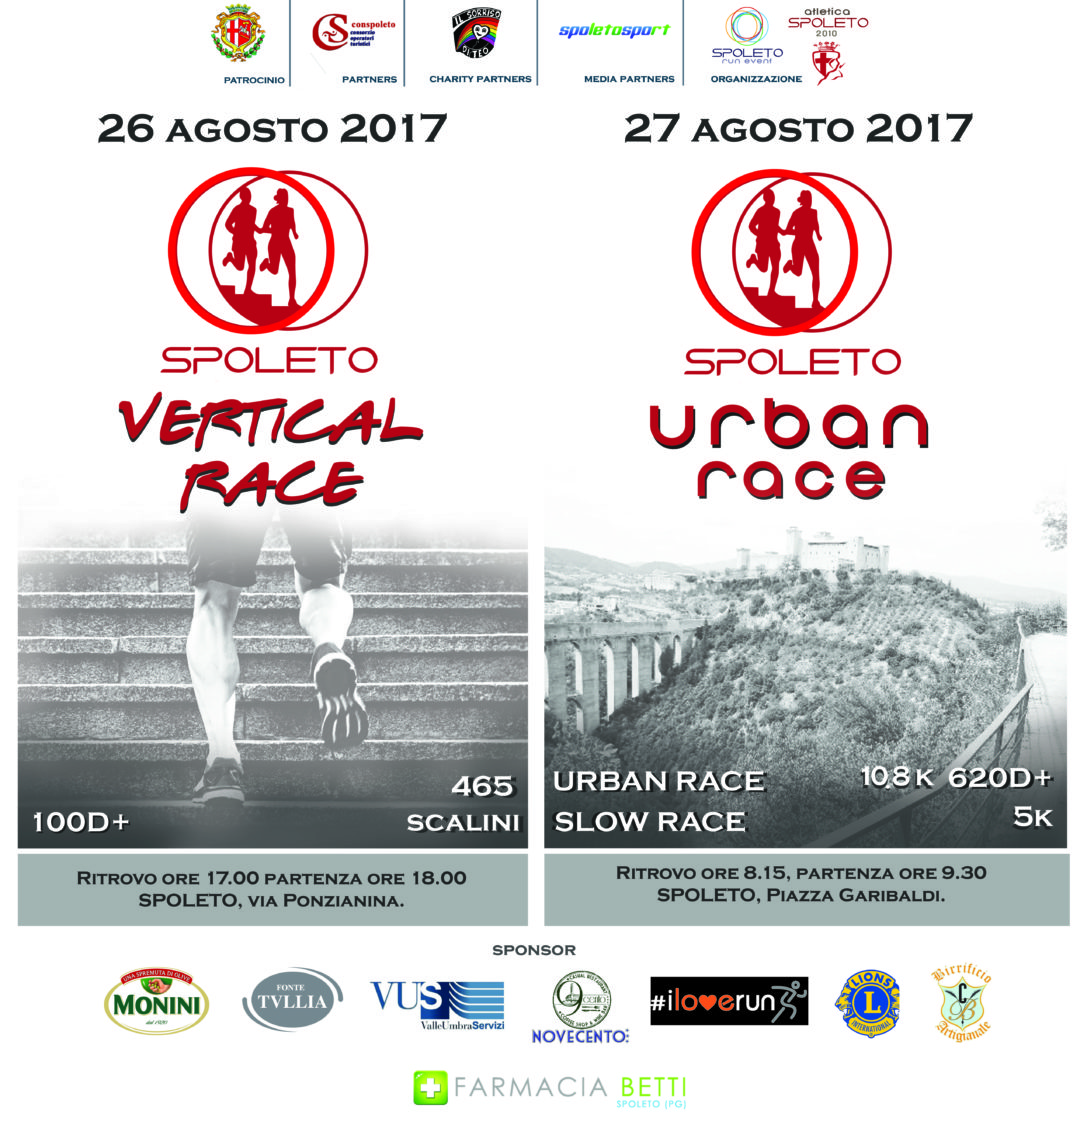 Spoleto vertical race 26.08.2017 + Spoleto urban race 27.08.2017